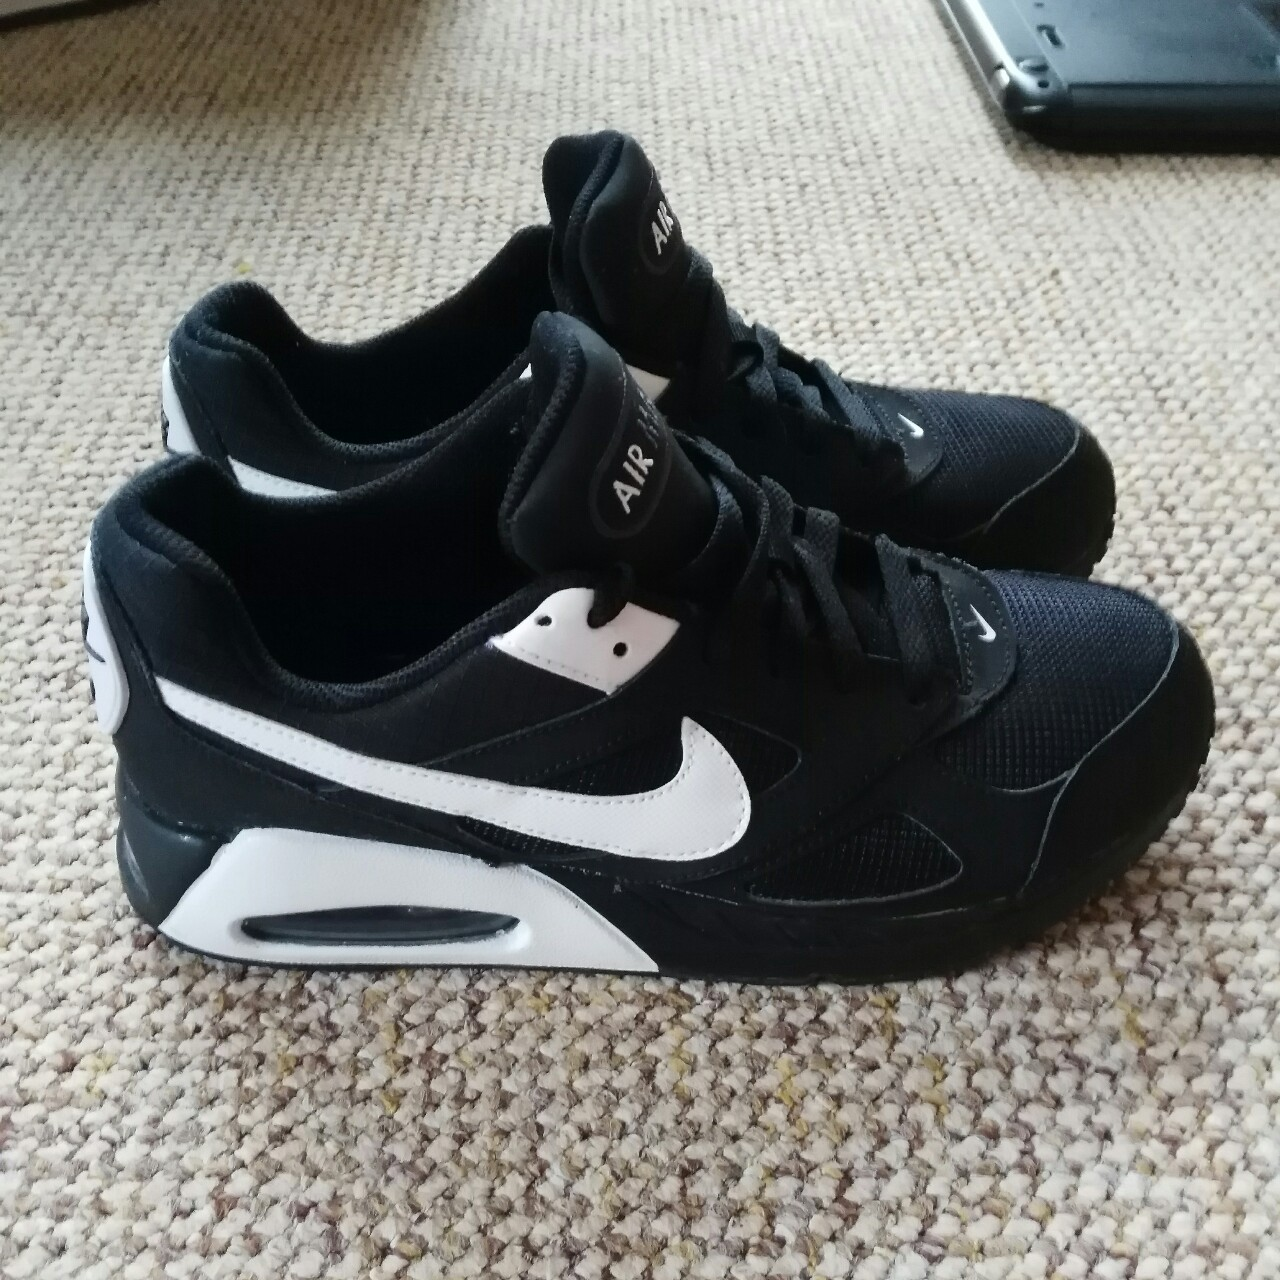 Nike Air Max old school. These have been worn once, Depop